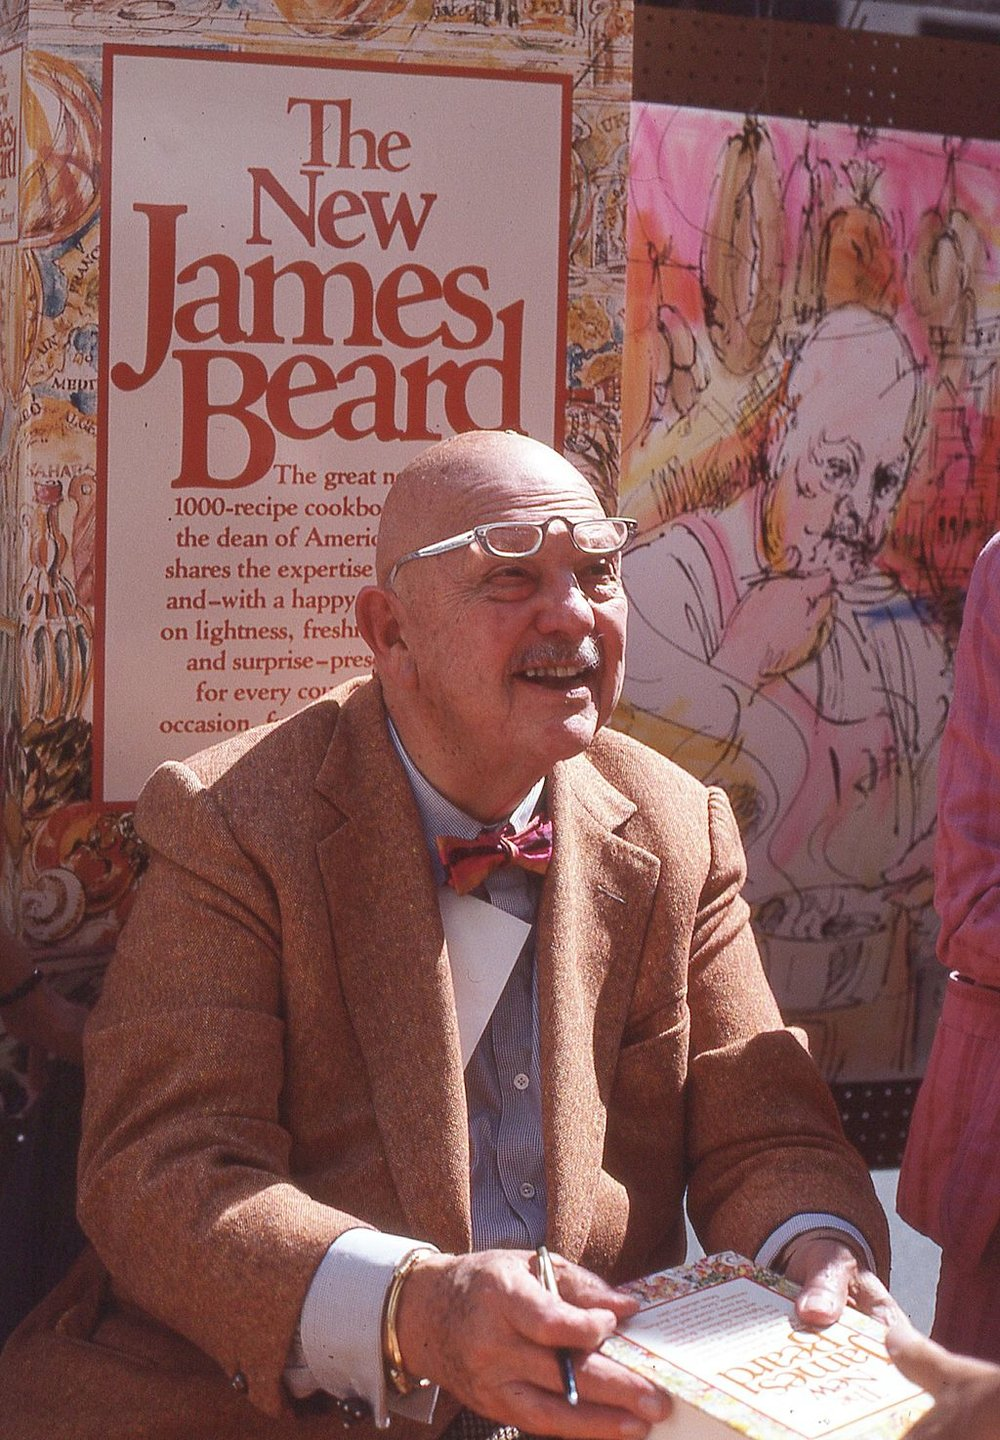 James Beard. Photo credit: Bill Golladay [ CC BY-SA 4.0 ],  via Wikimedia Commons